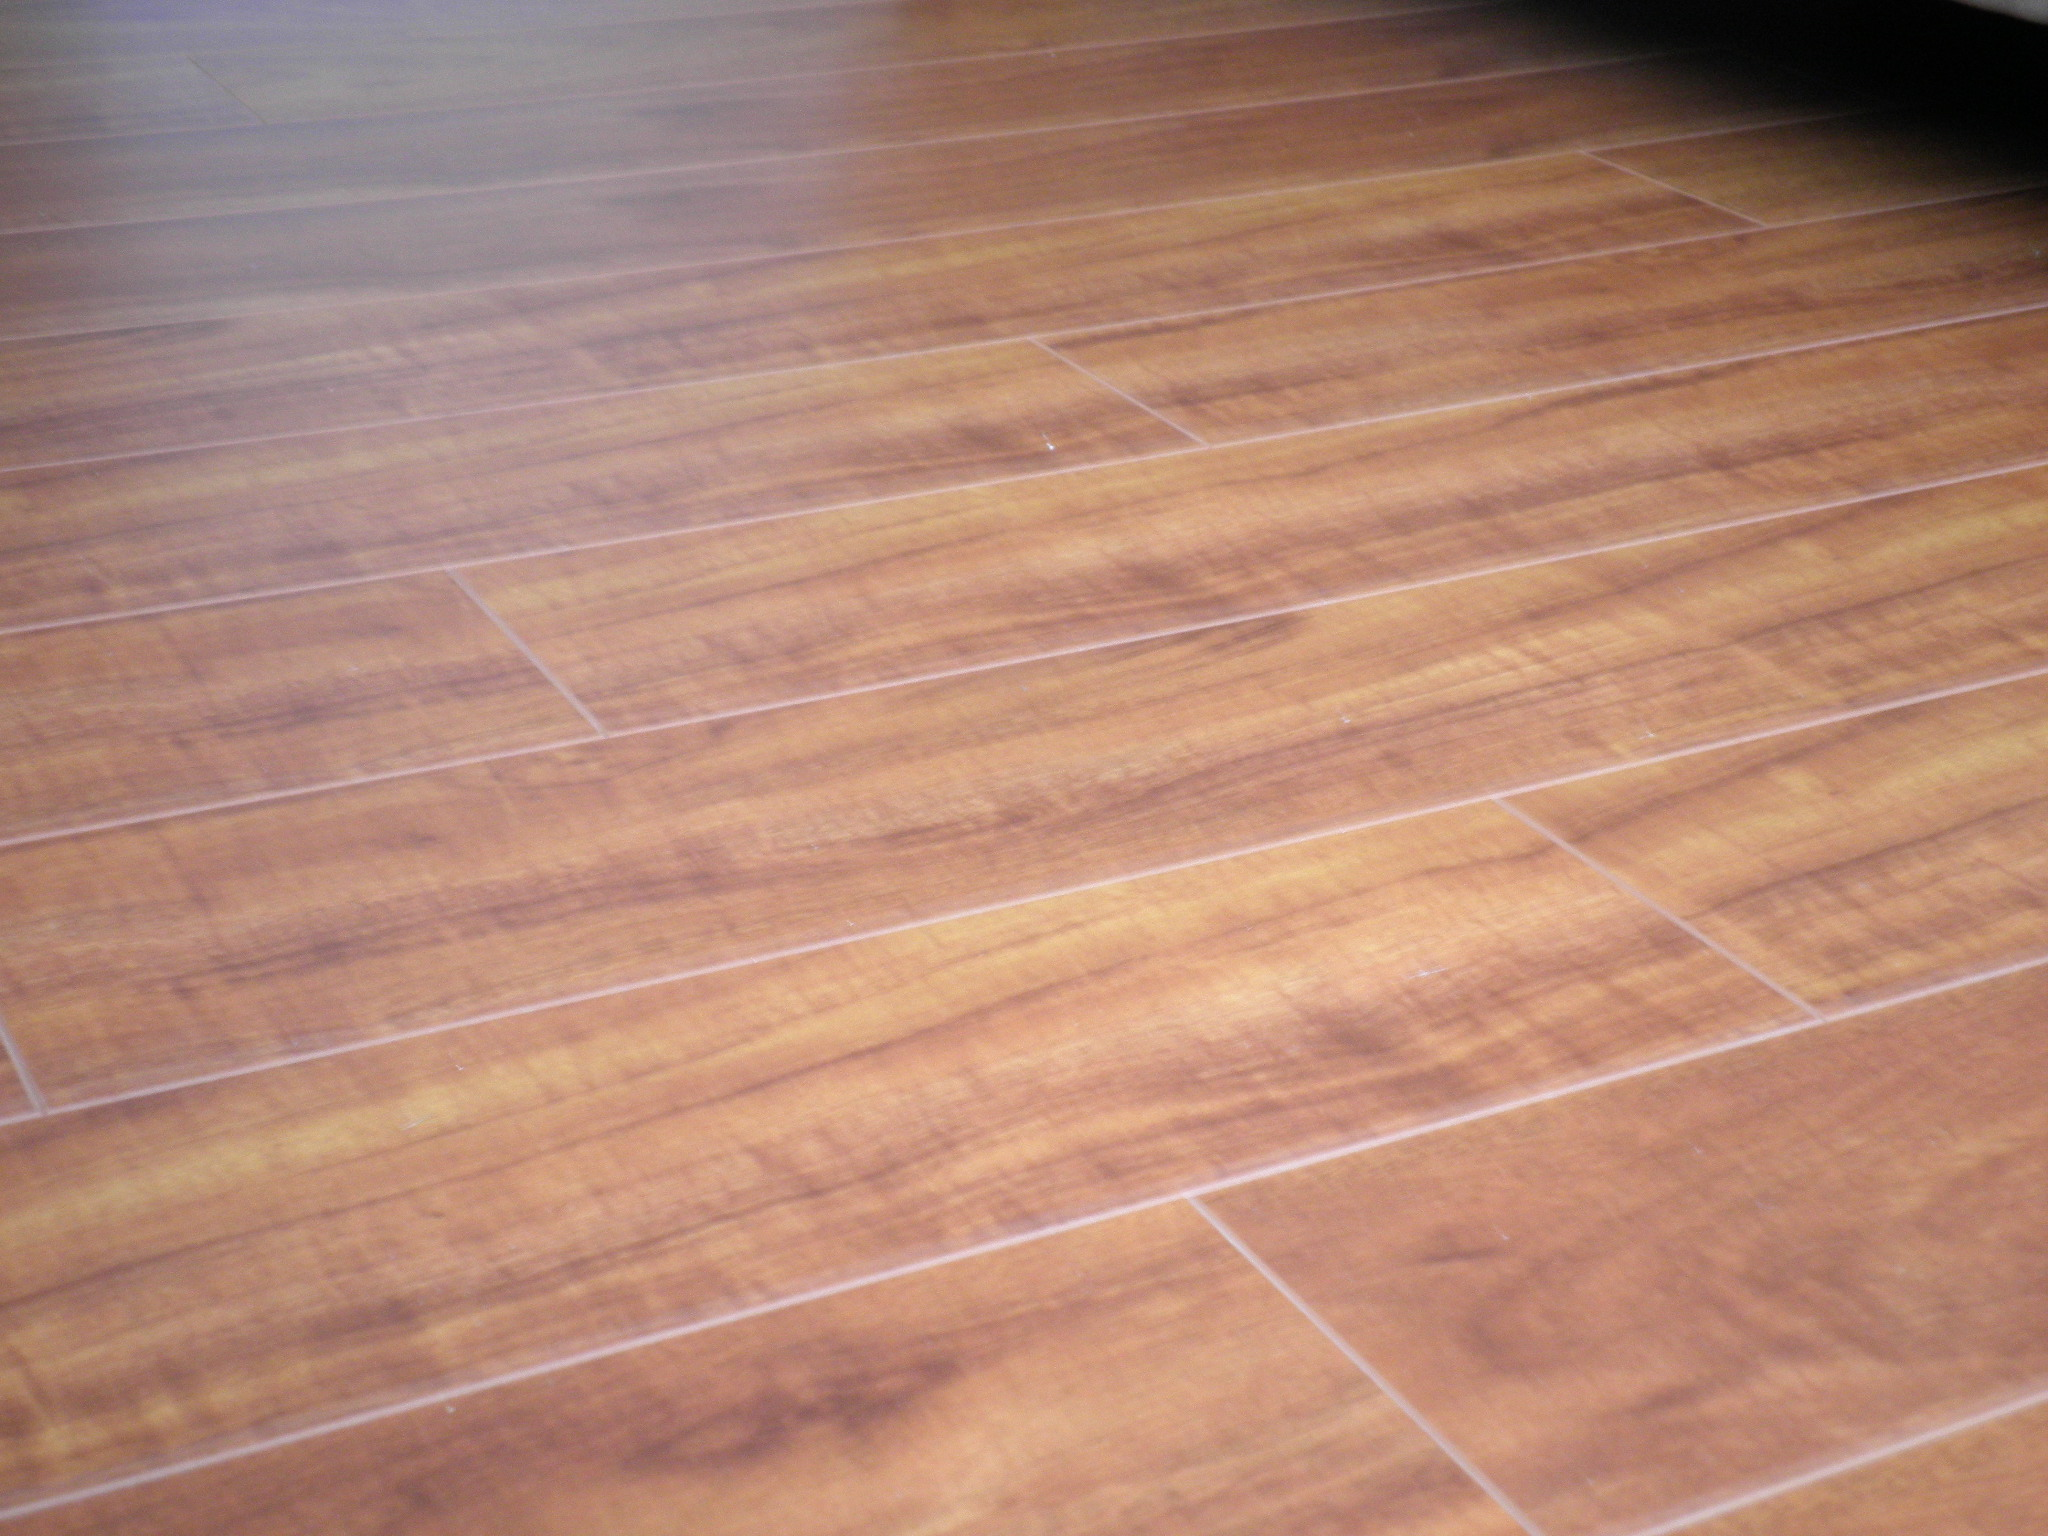 floor install over on installation concrete a how installing yourself ideas to diy floating floors shining laminate tos step